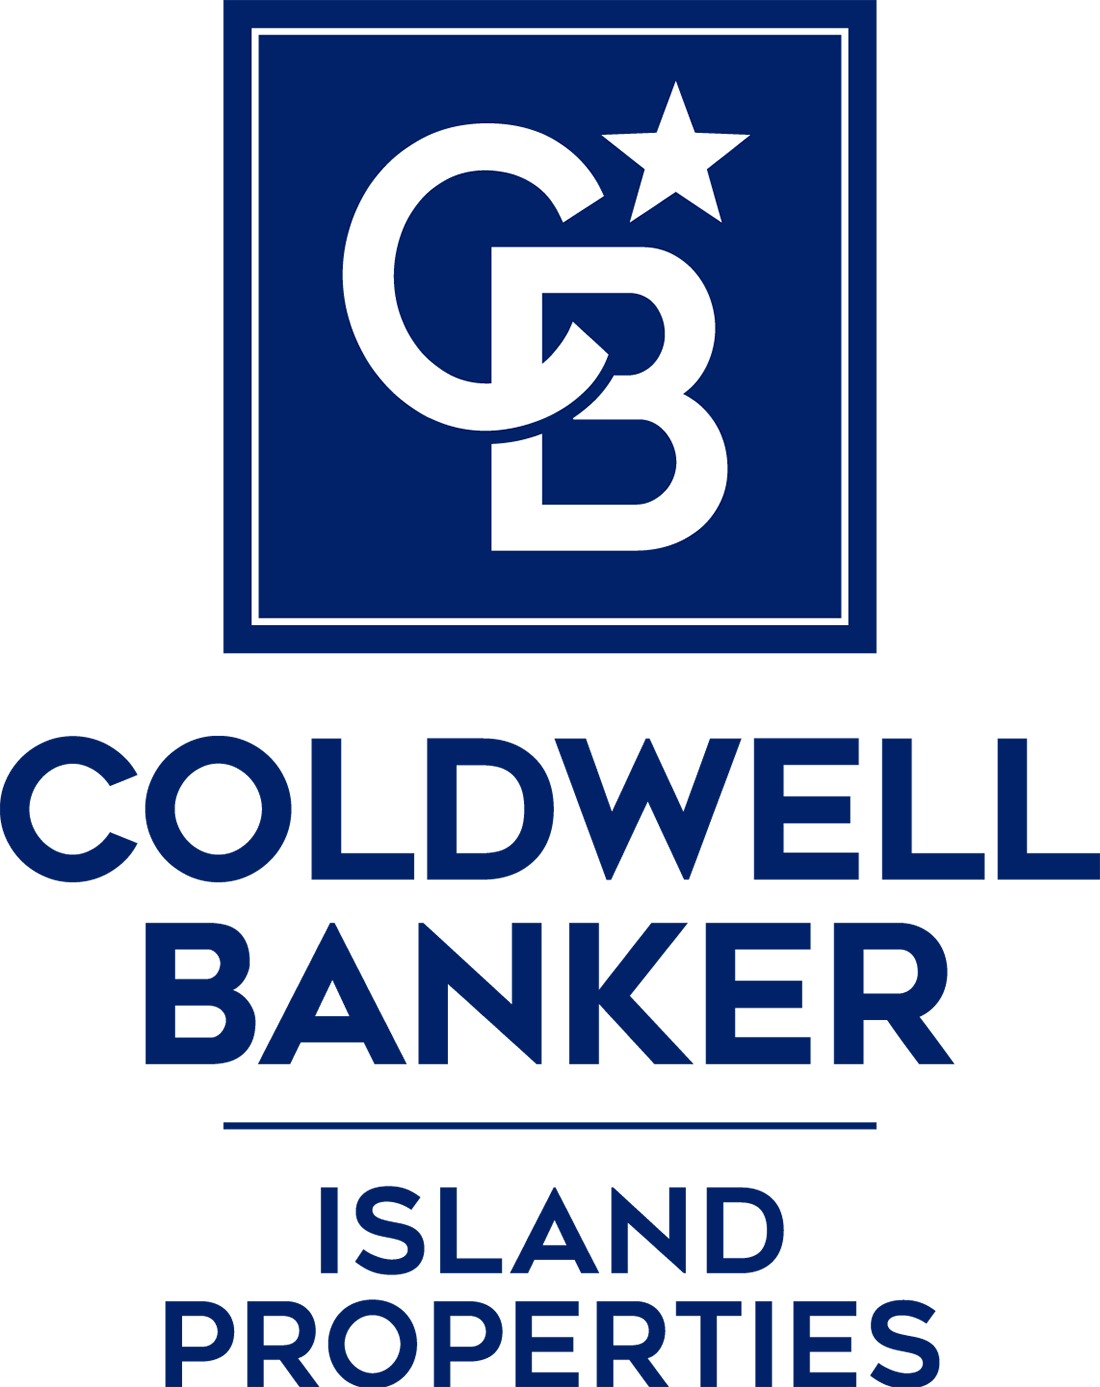 Tracy Regan - Coldwell Banker Island Properties Logo